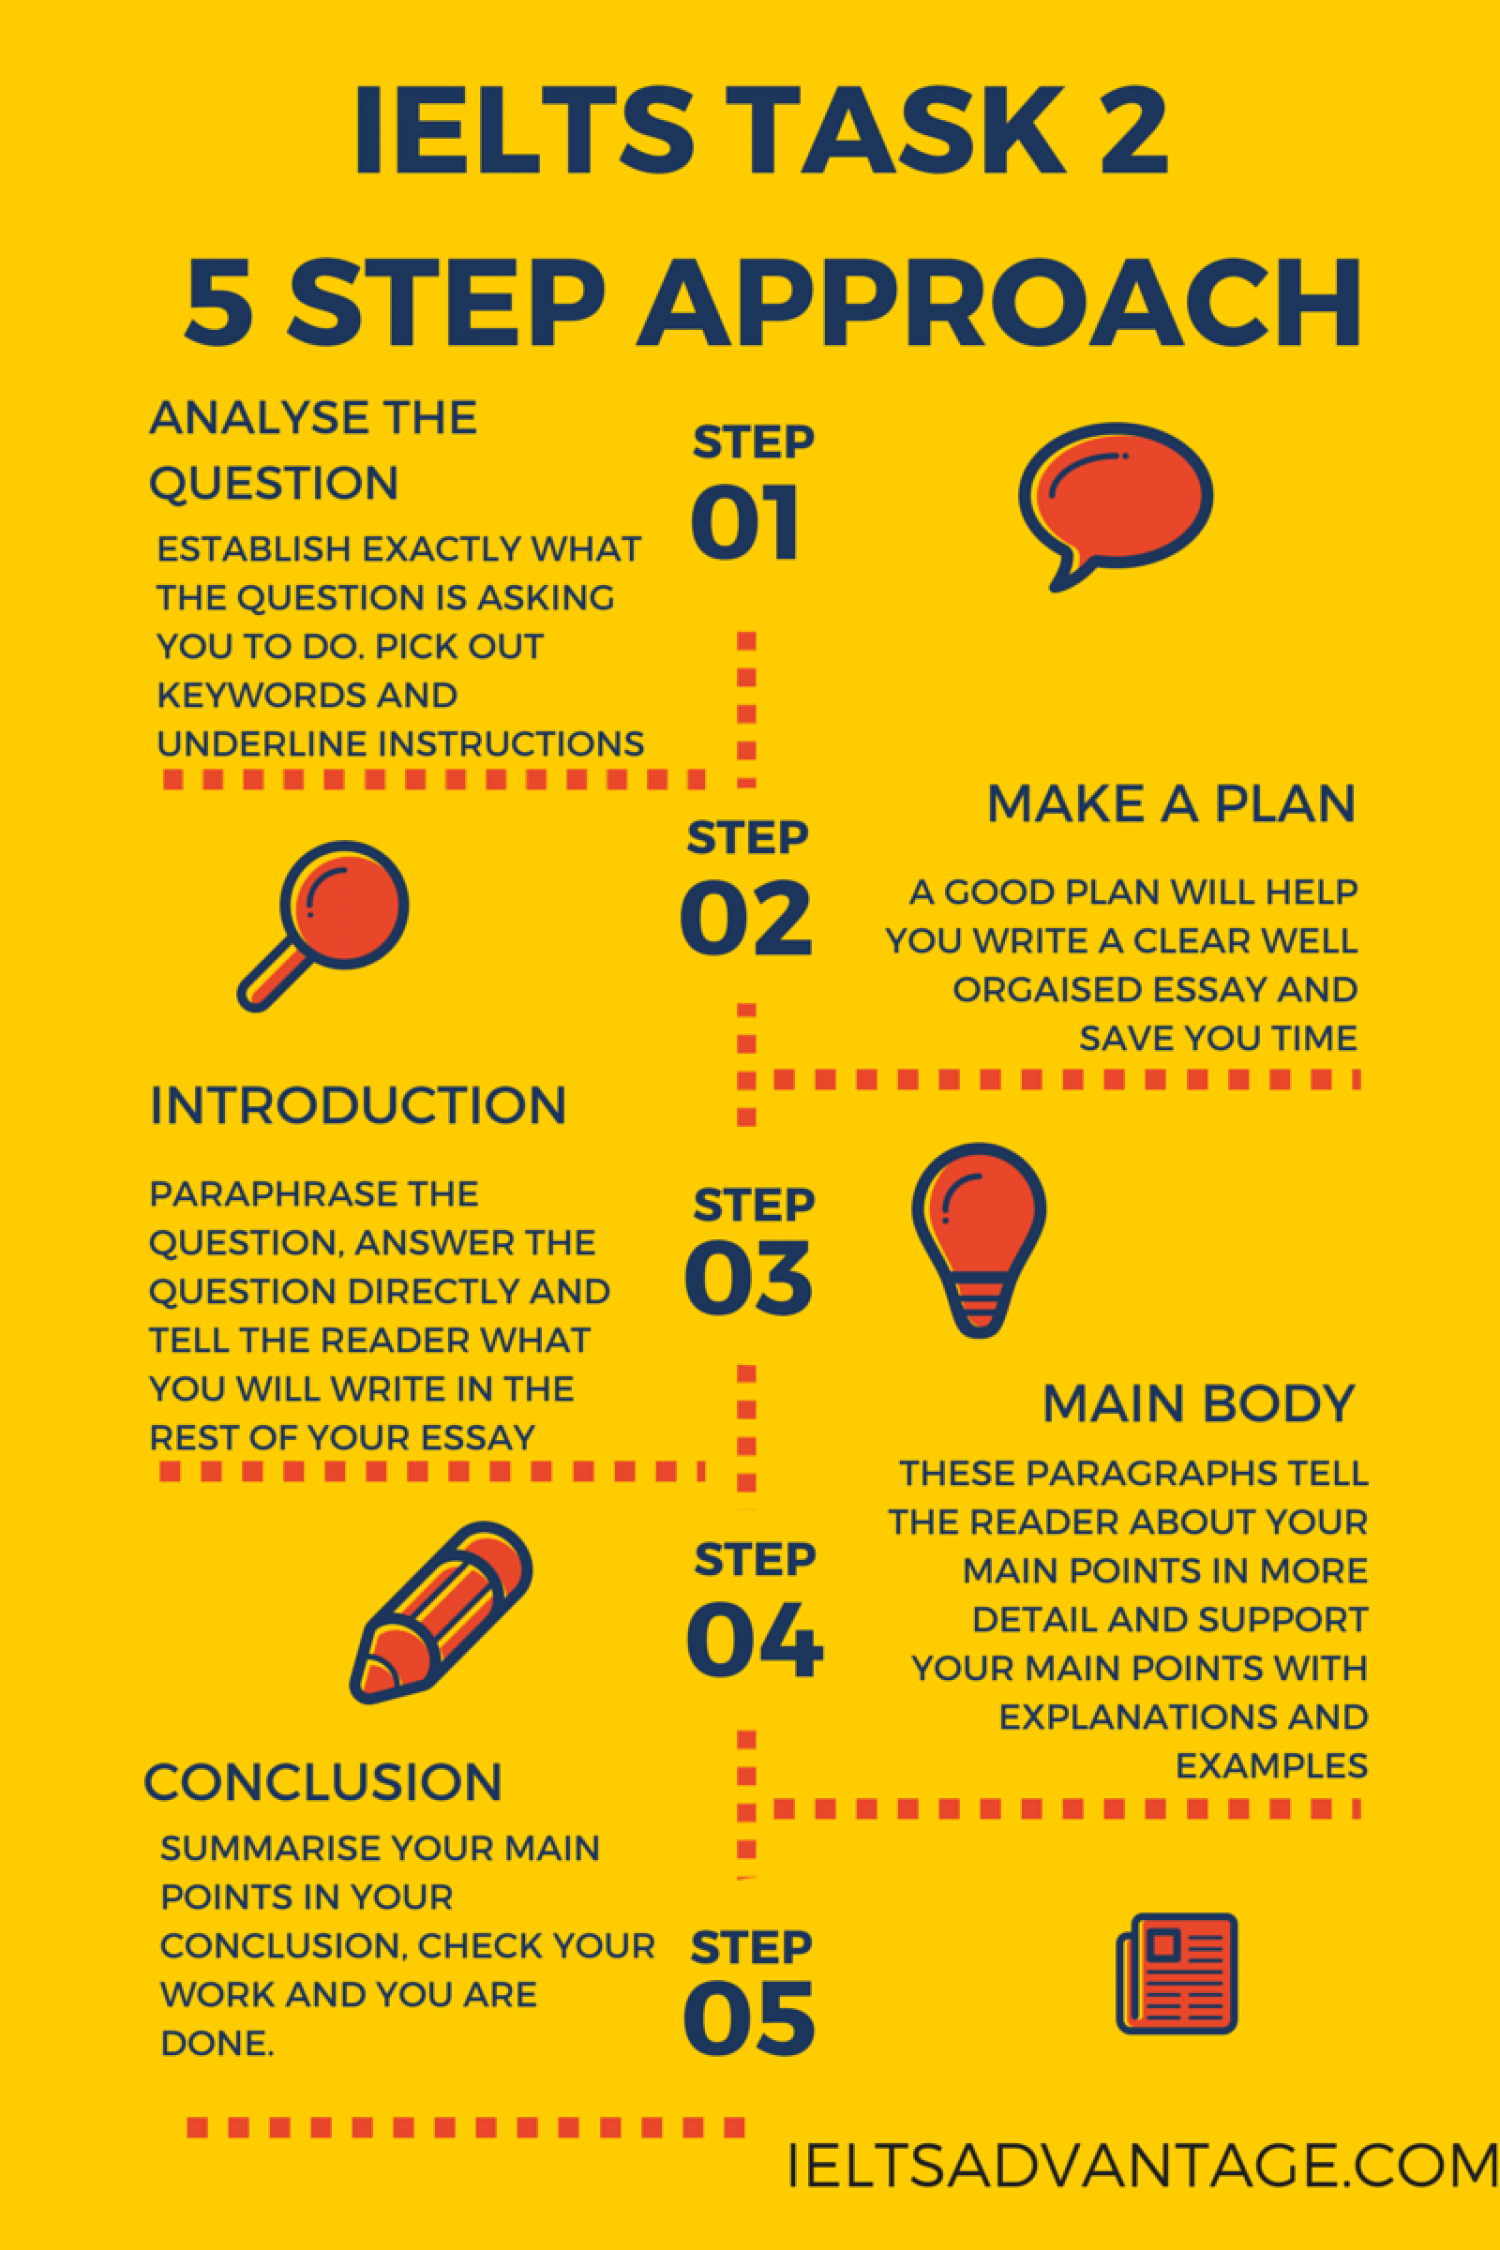 A students guide to academic writing wmycomplab